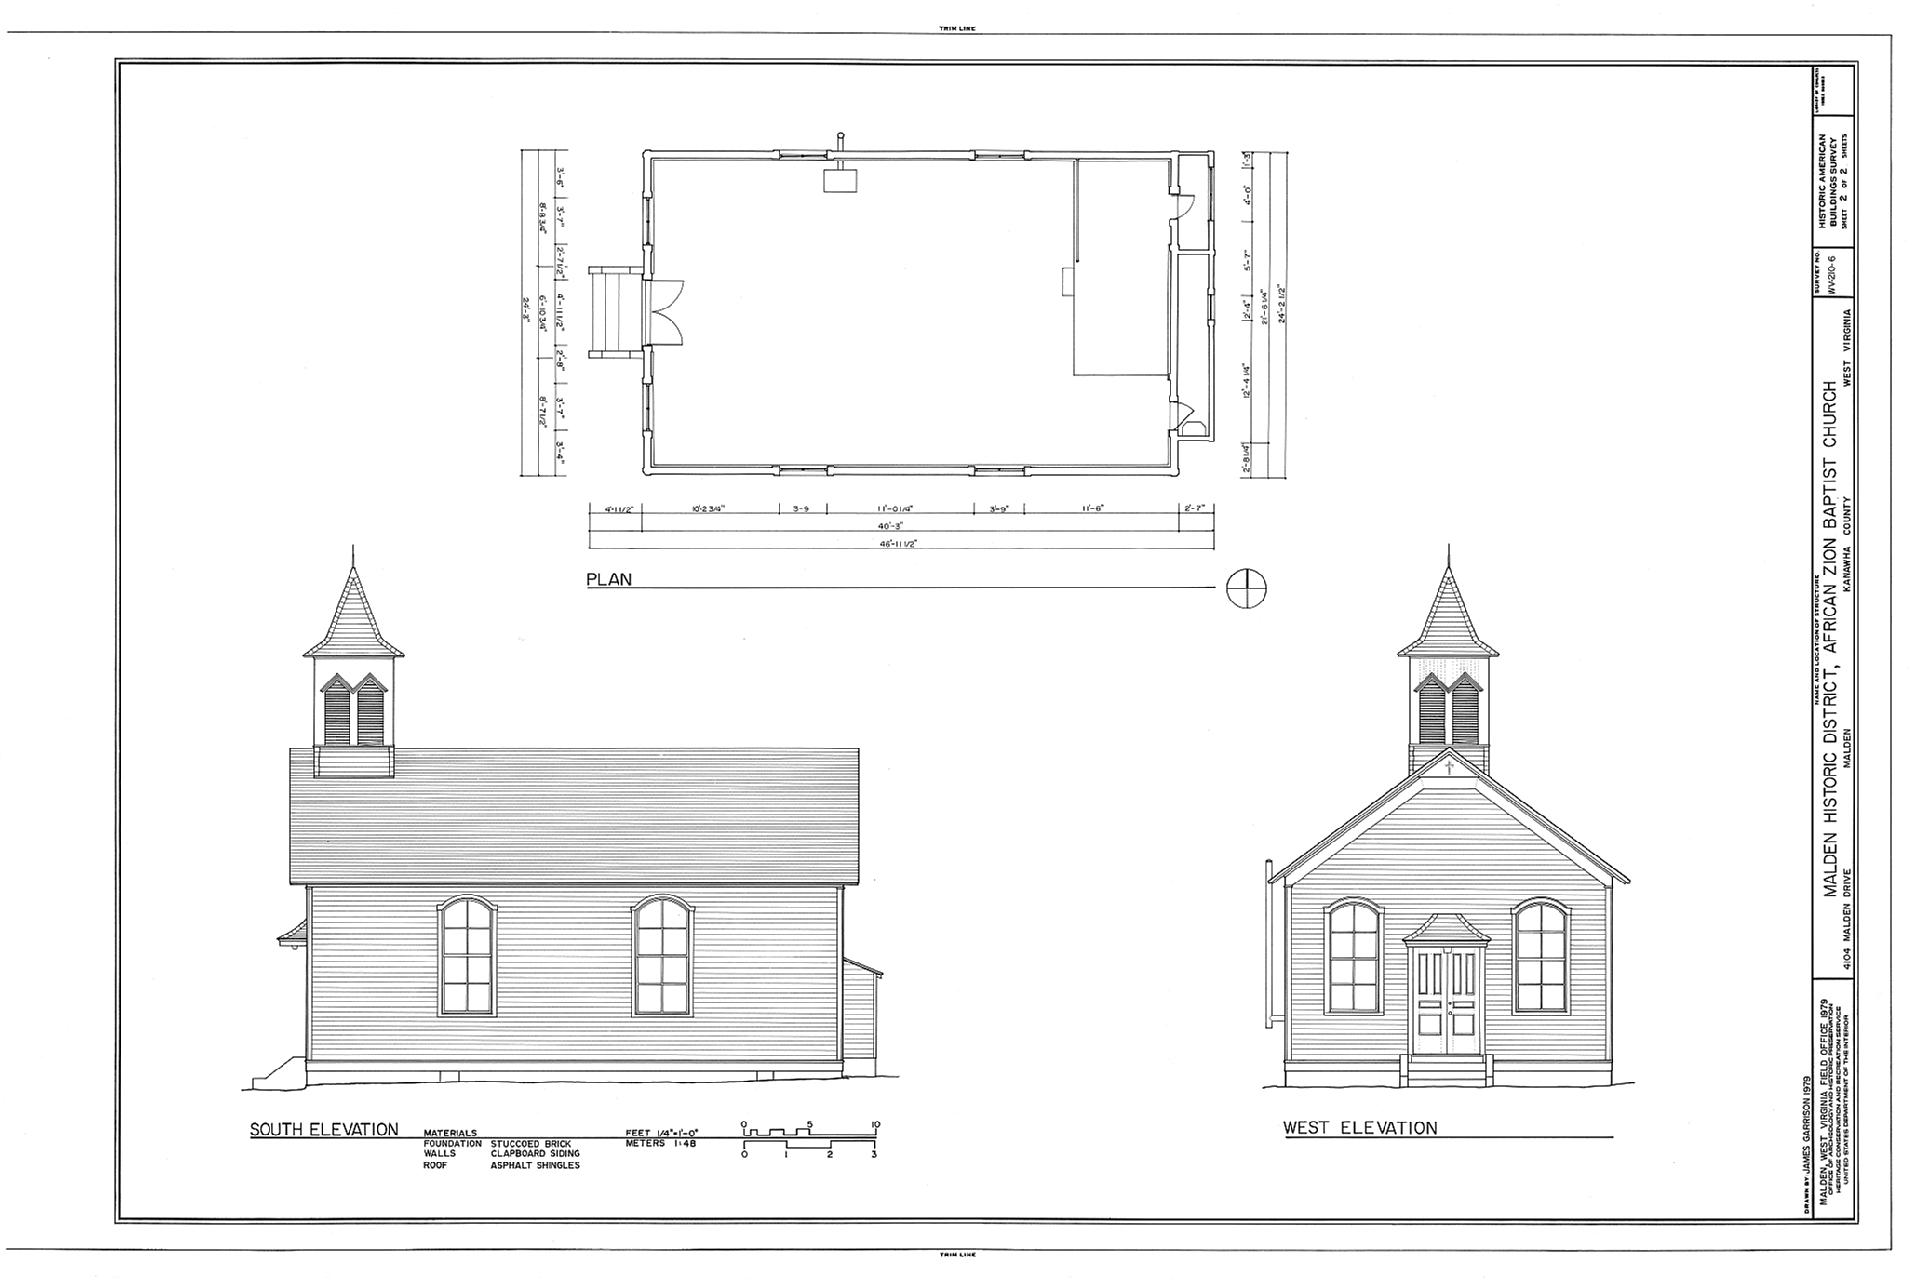 Architectural drawing of the African Zion Baptist Church